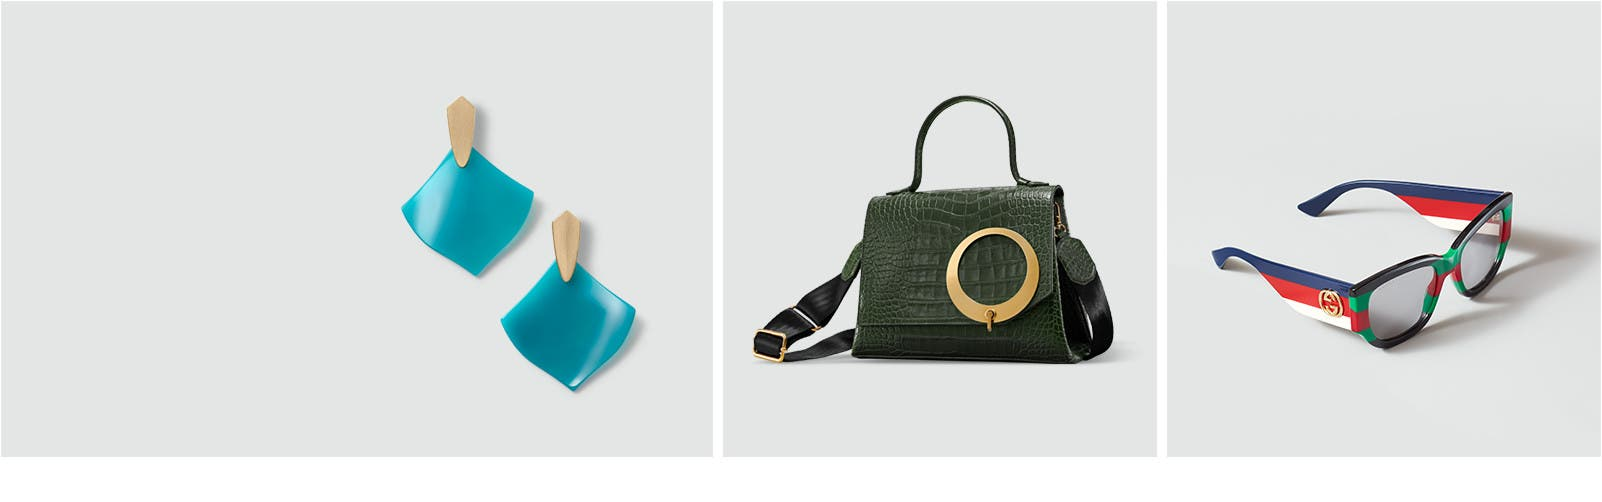 New handbags and accessories.